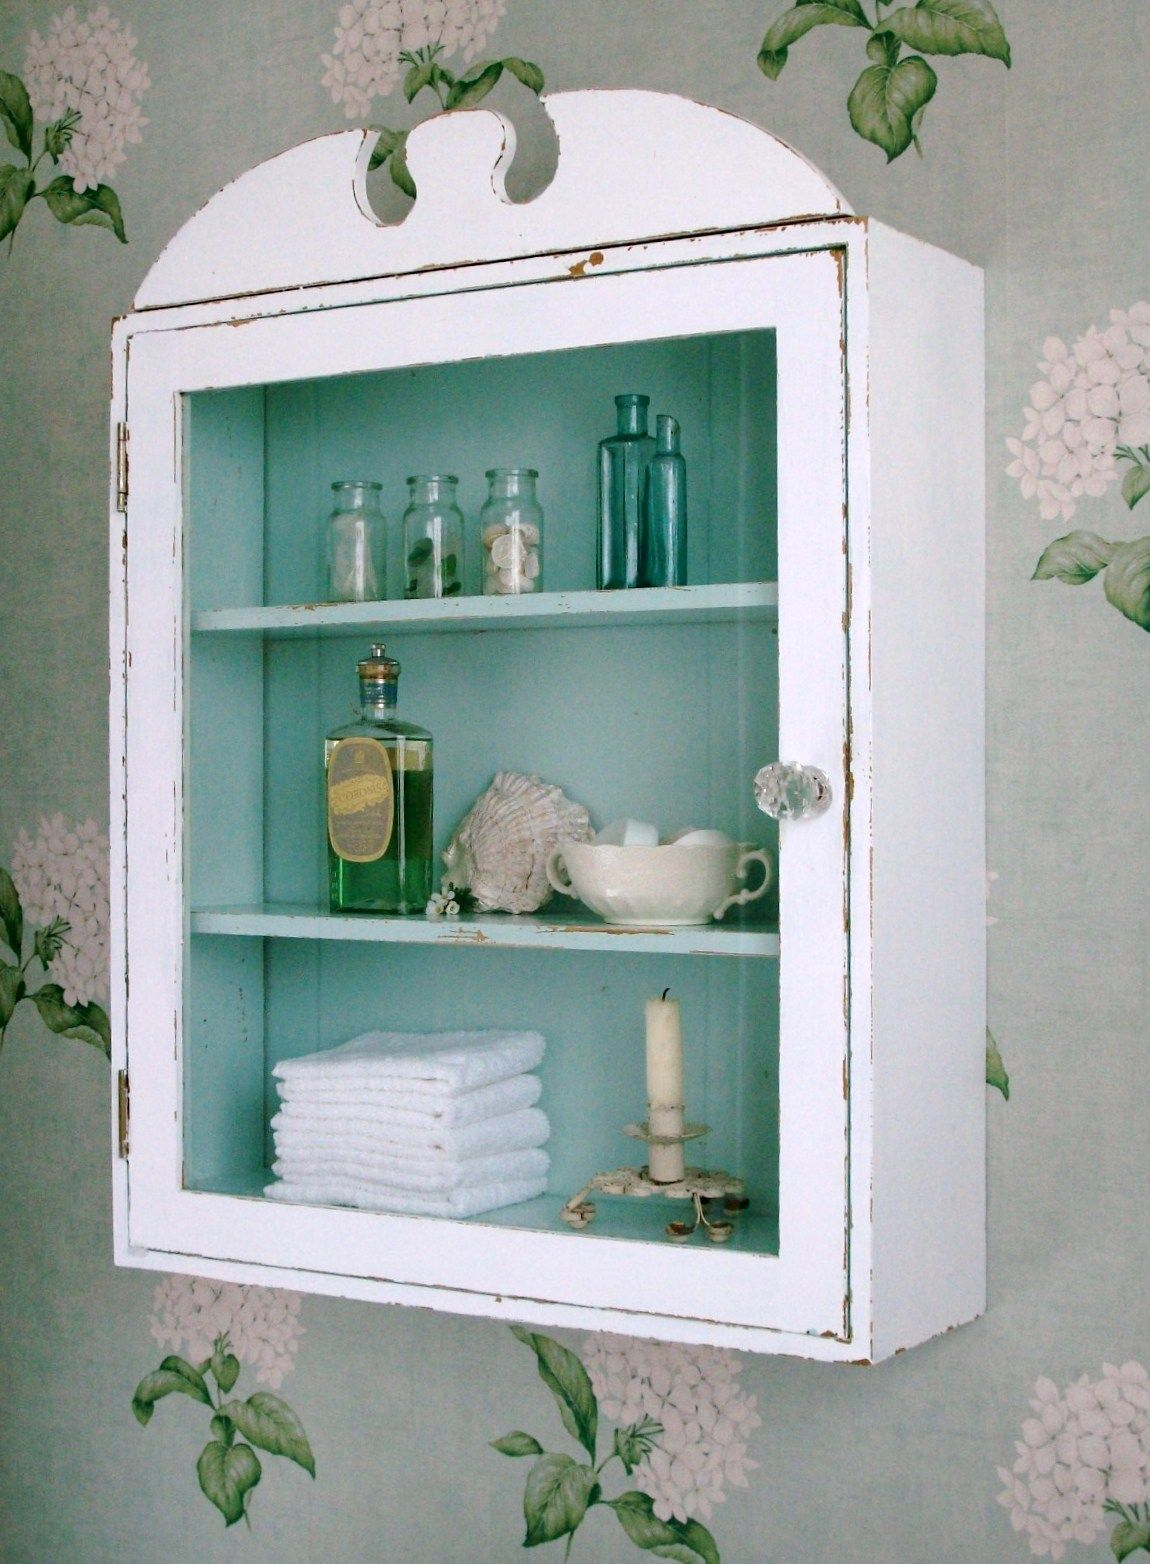 Medicine Cabinet Organizing Hacks - How to Organize a Medicine Cabinet